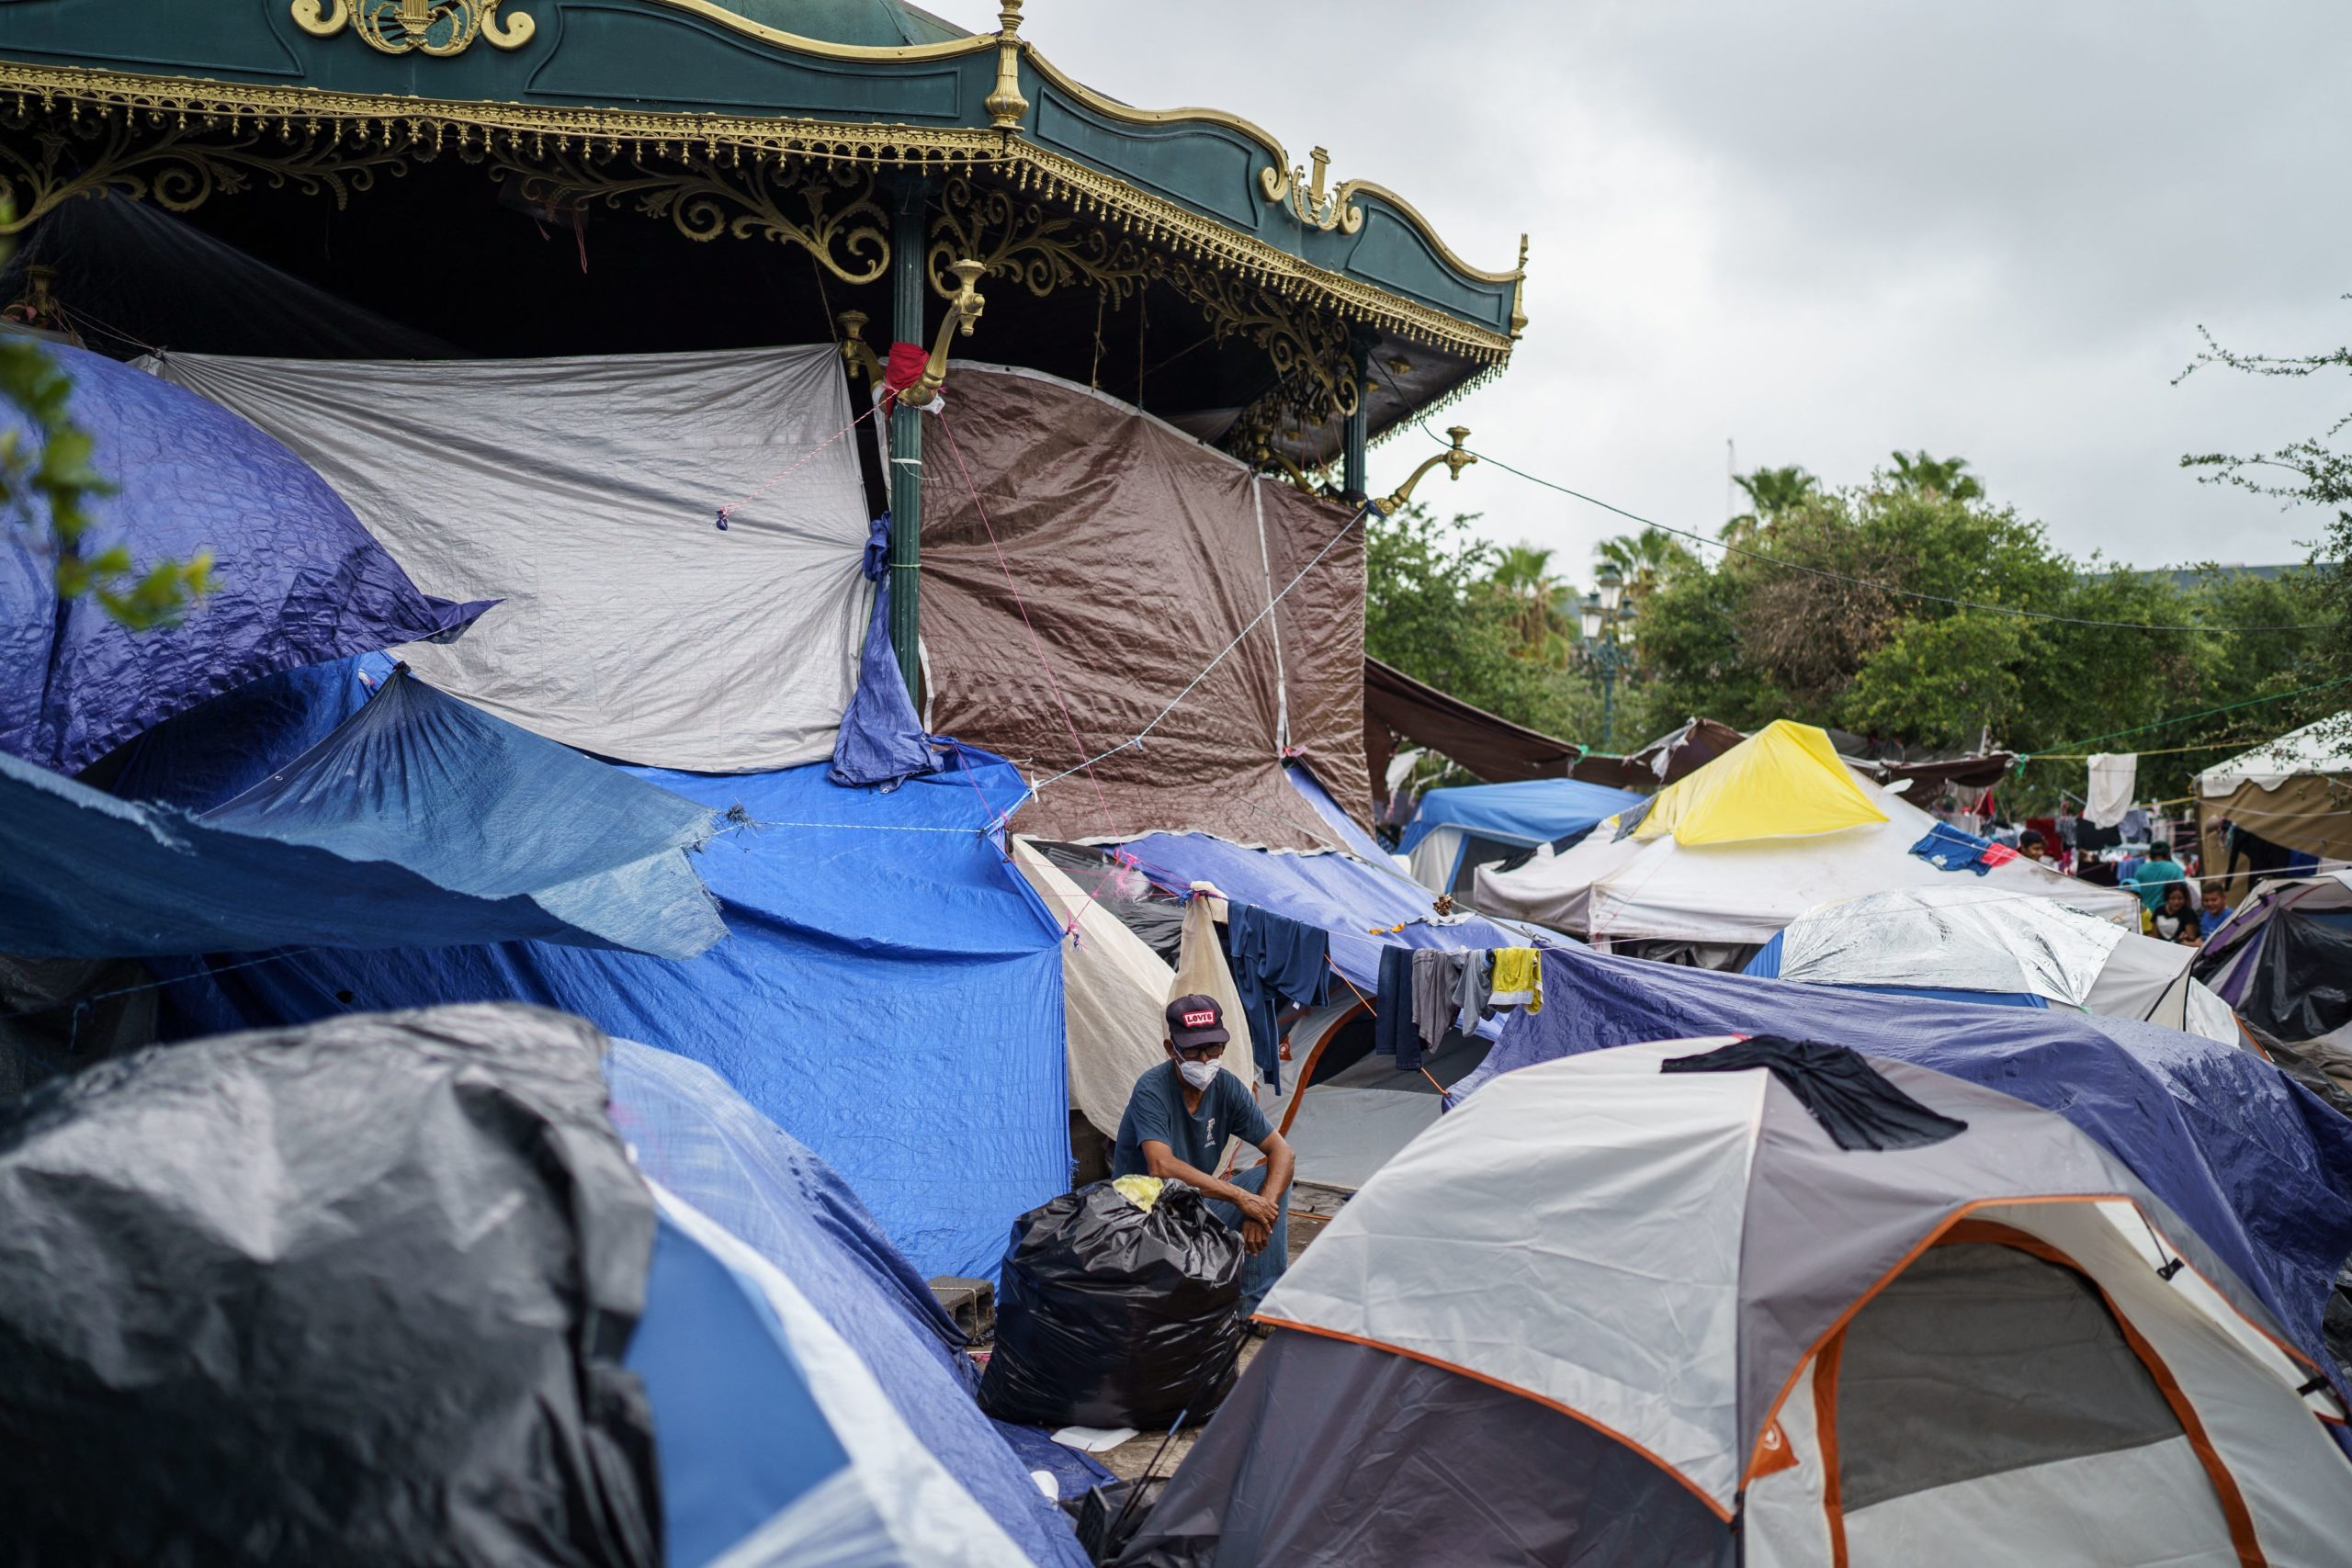 A man sits among a sea of tents in a makeshift migrant camp in the border town of Reynosa, Tamaulipas, Mexico on July 10, 2021. (Photo by PAUL RATJE/AFP via Getty Images)